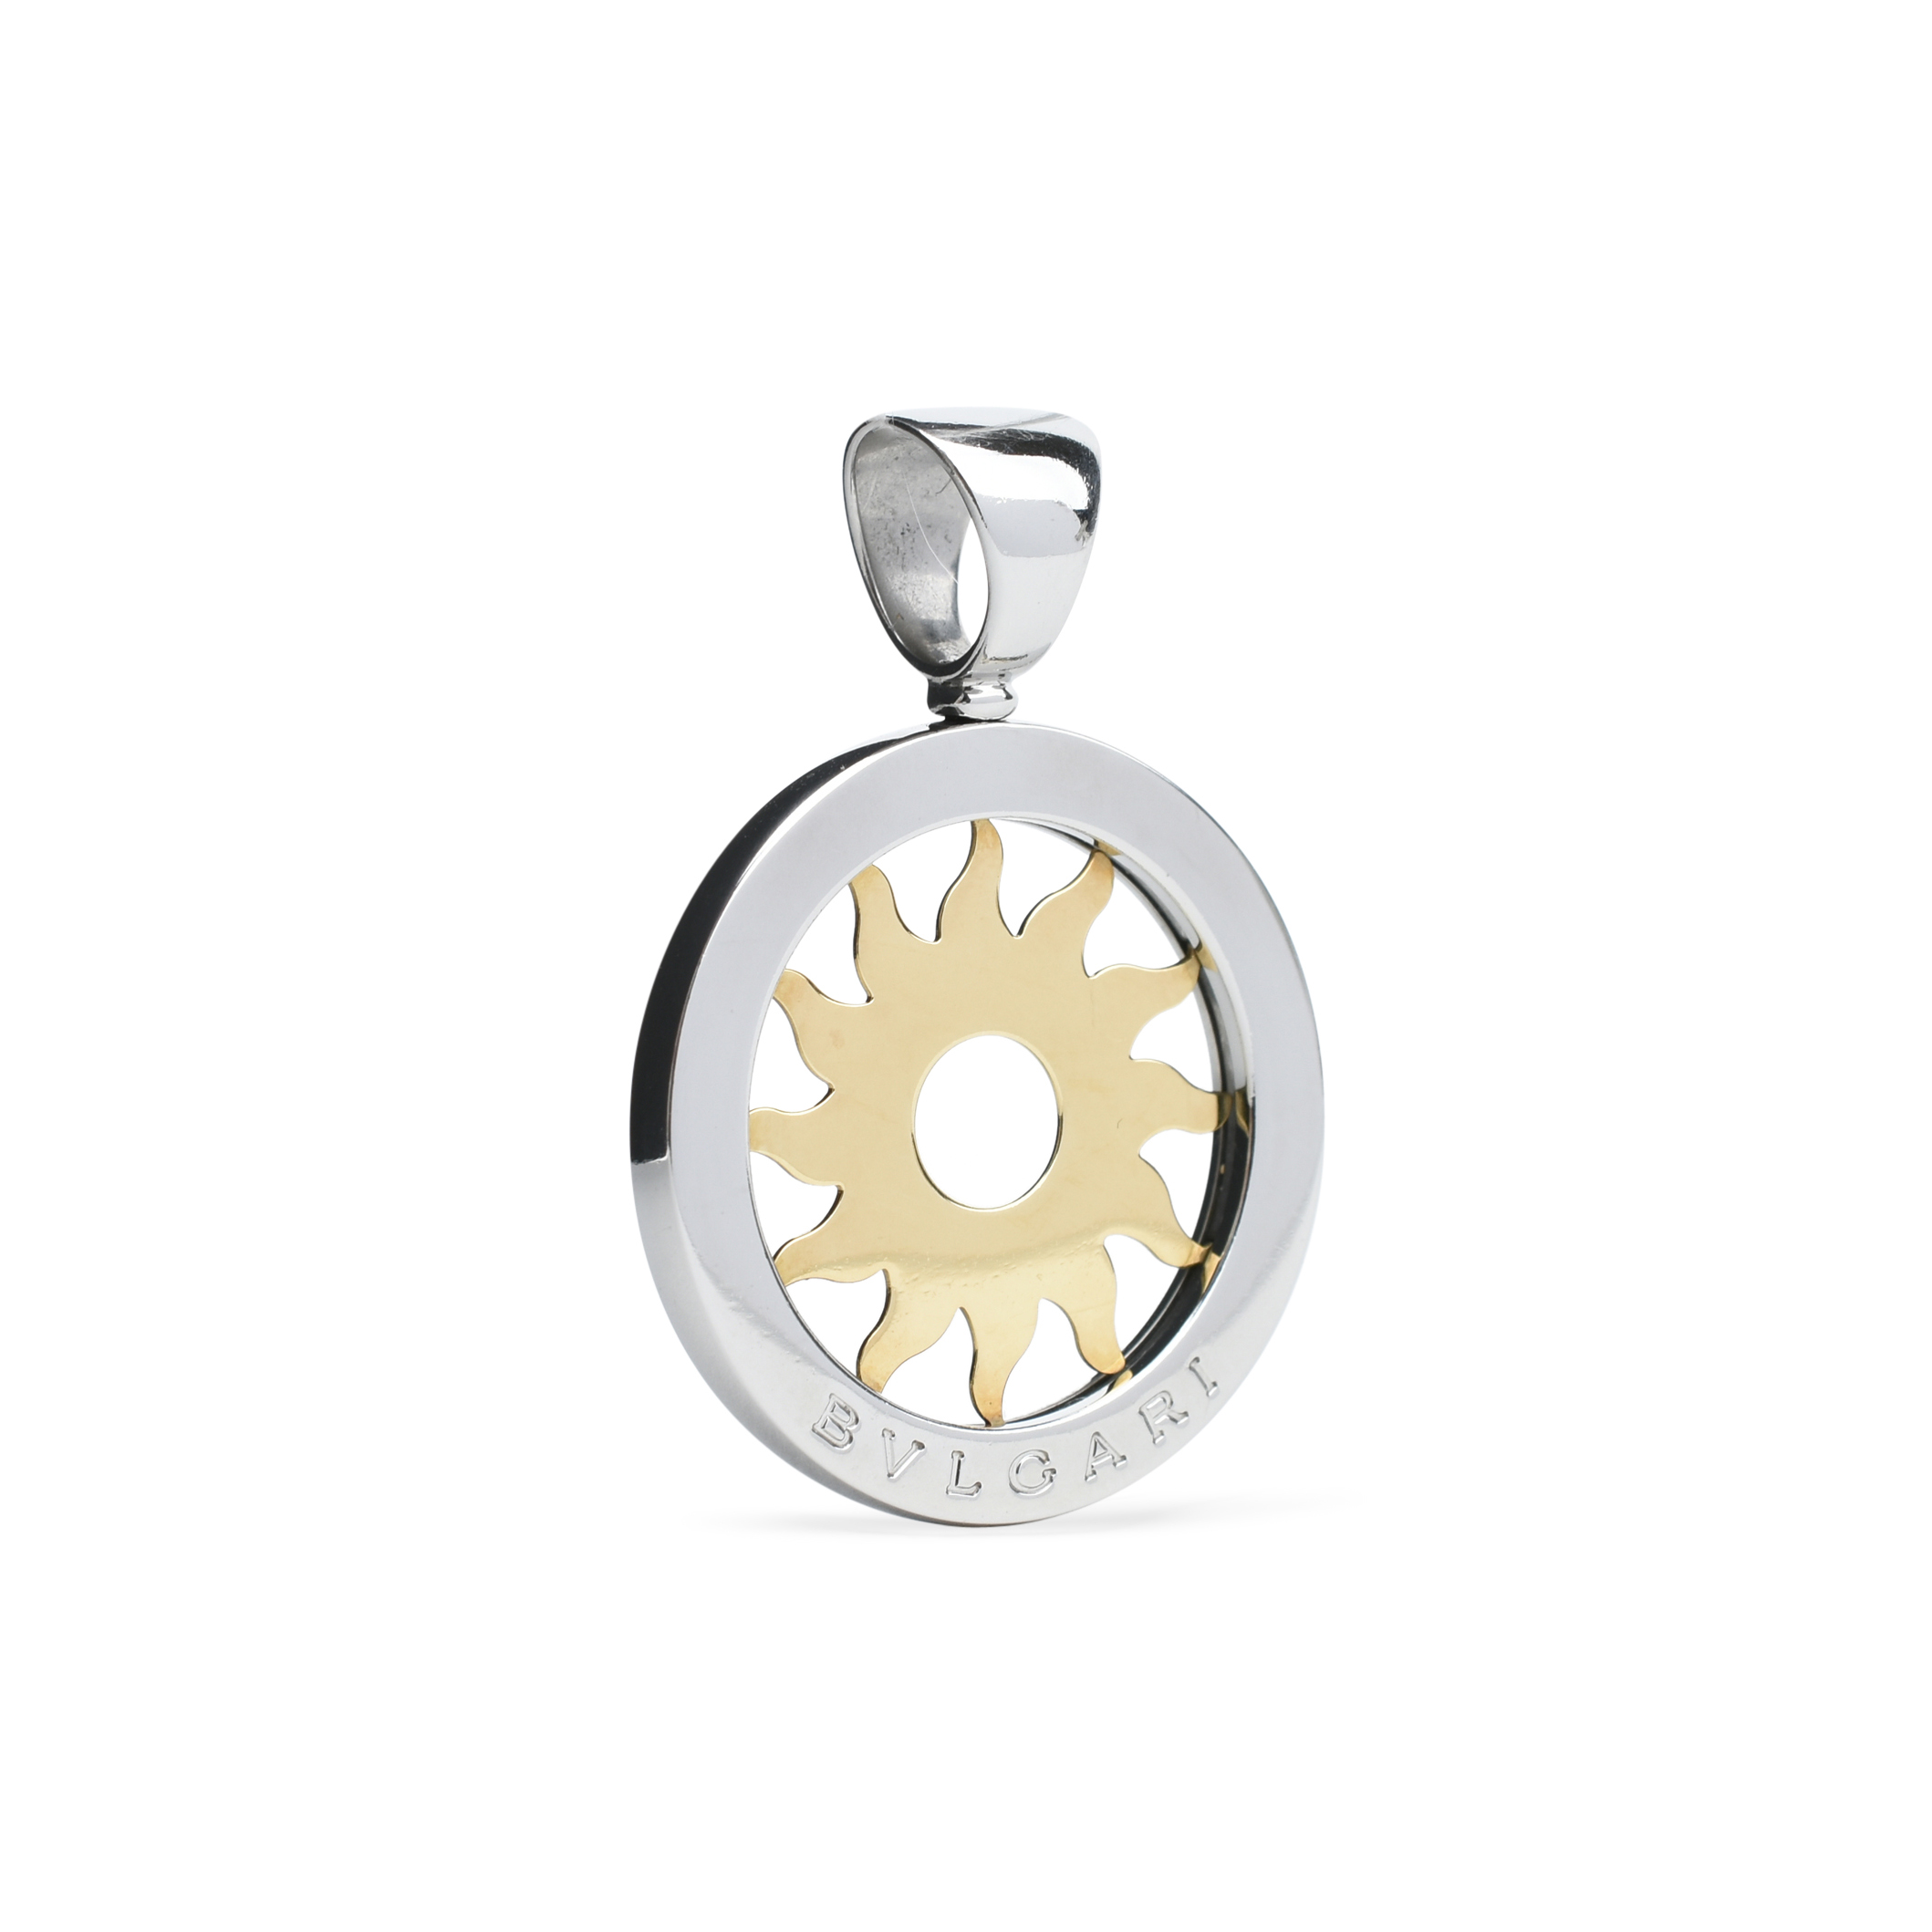 march hollowell necklace sun copy logan jewelry yellow rose sunrise diamond products cut